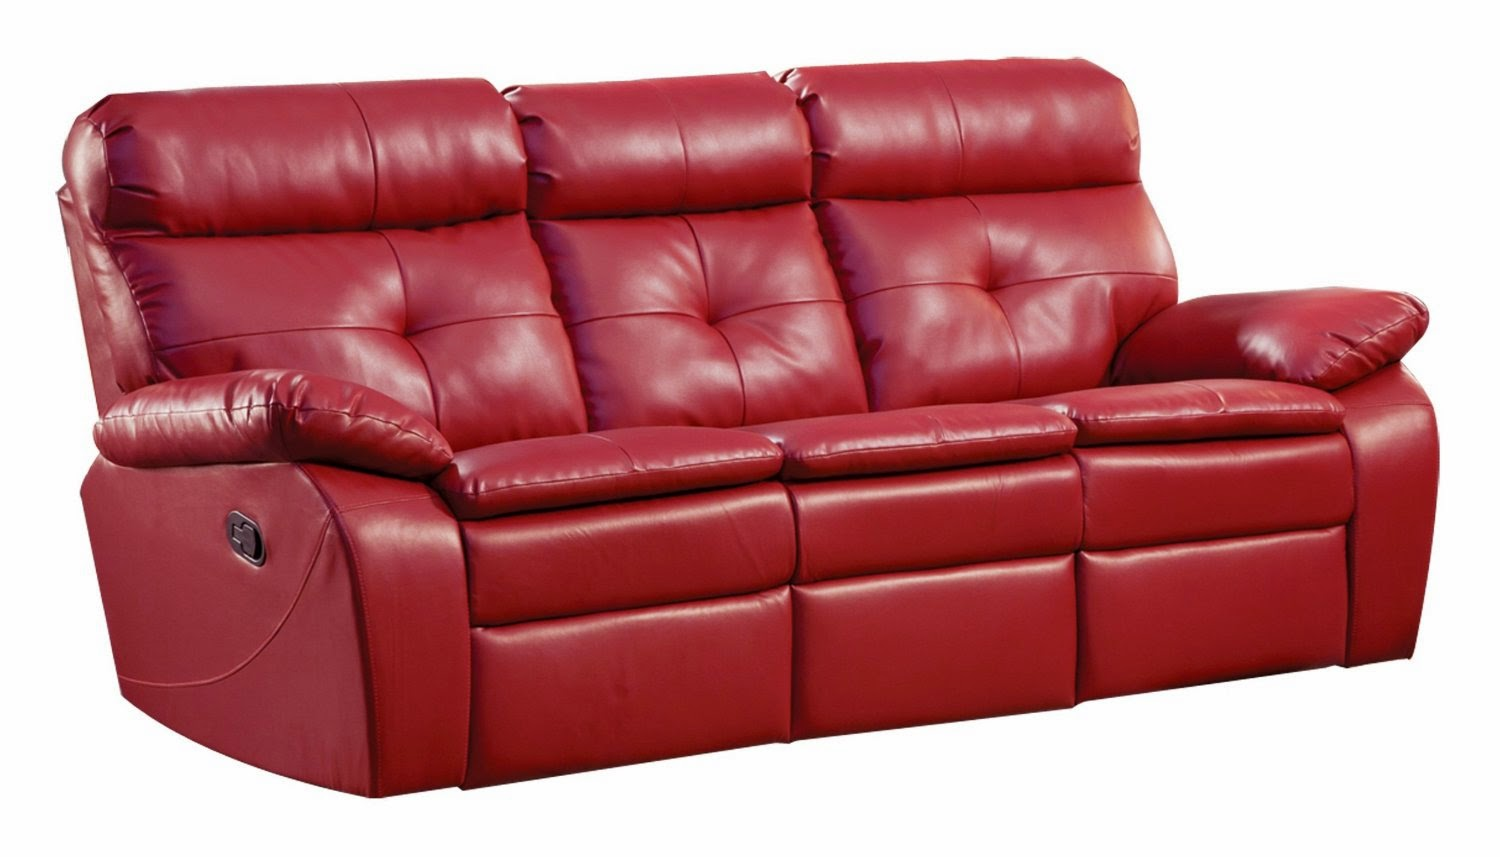 The best reclining sofa reviews red leather reclining sofa and loveseat Leather reclining loveseat